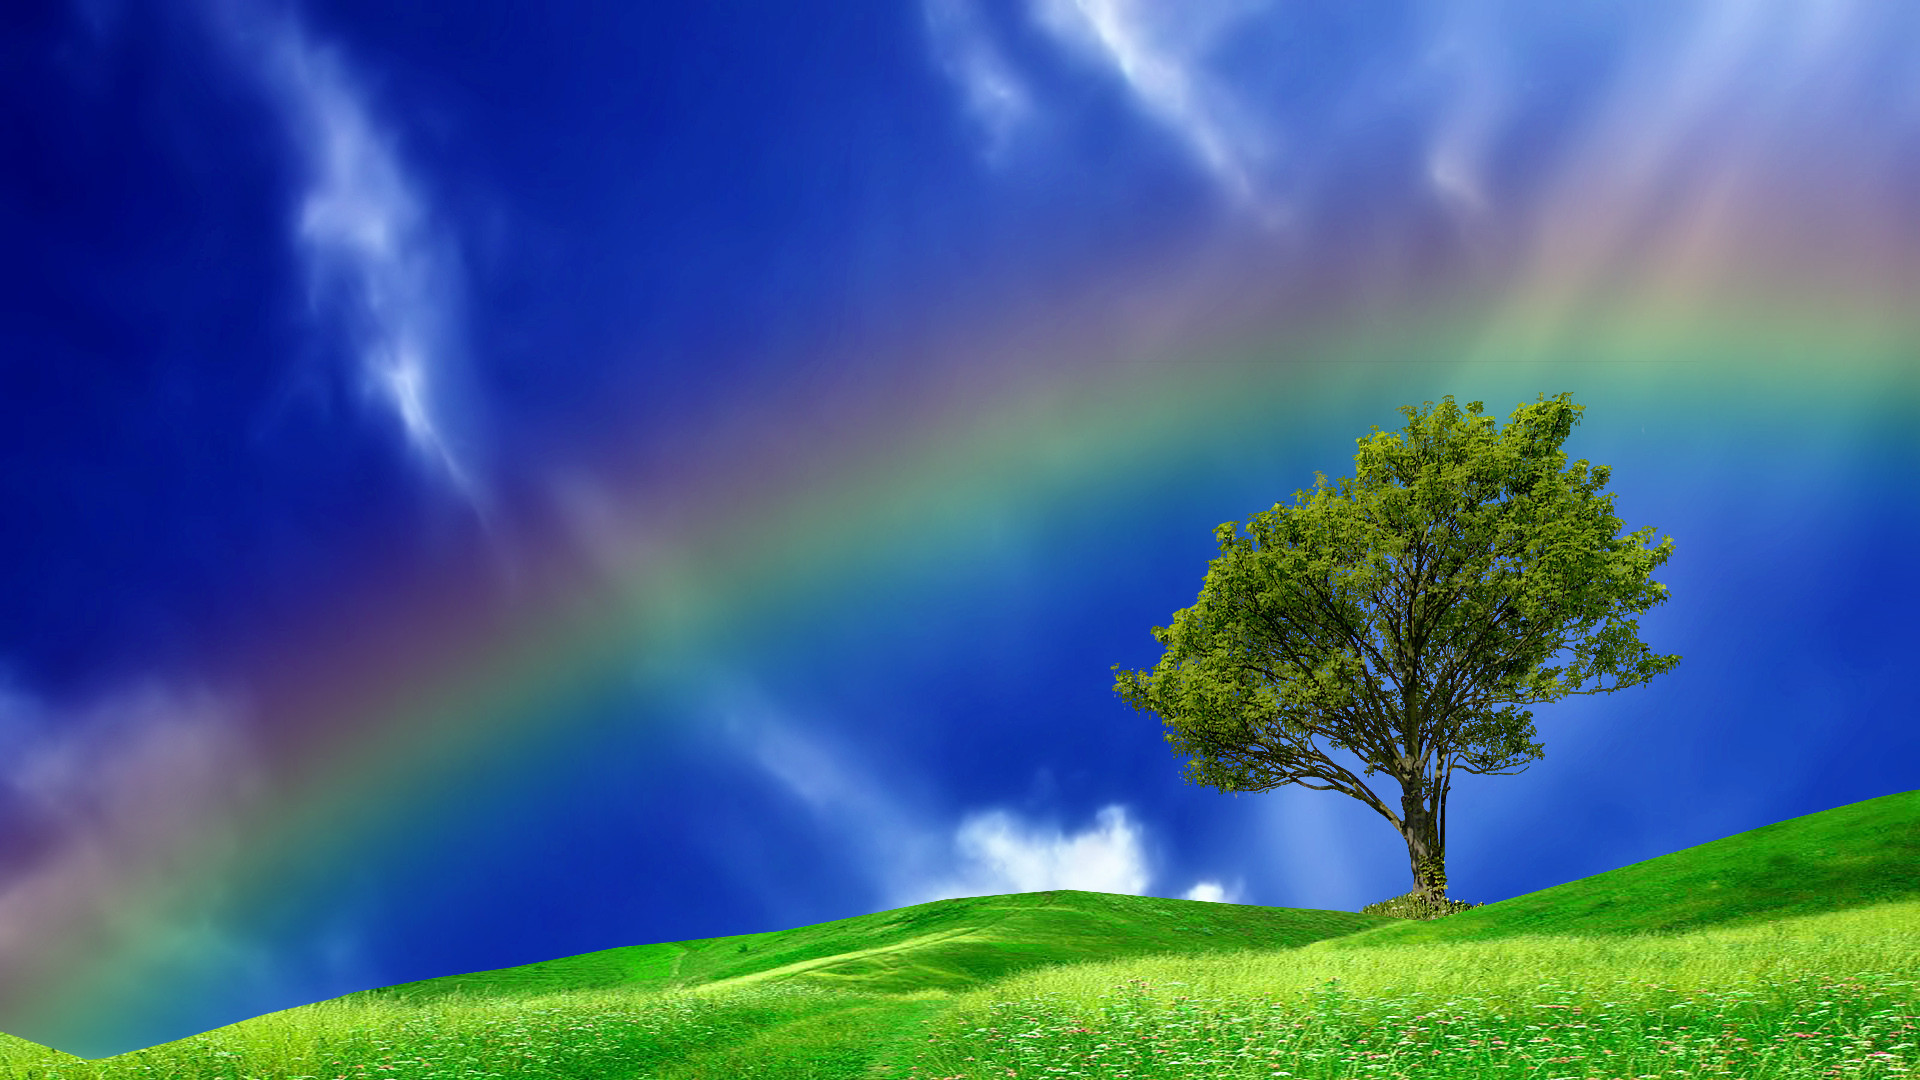 Magnificent Rainbow In A Blue Sky Hd Desktop Background HD wallpapers